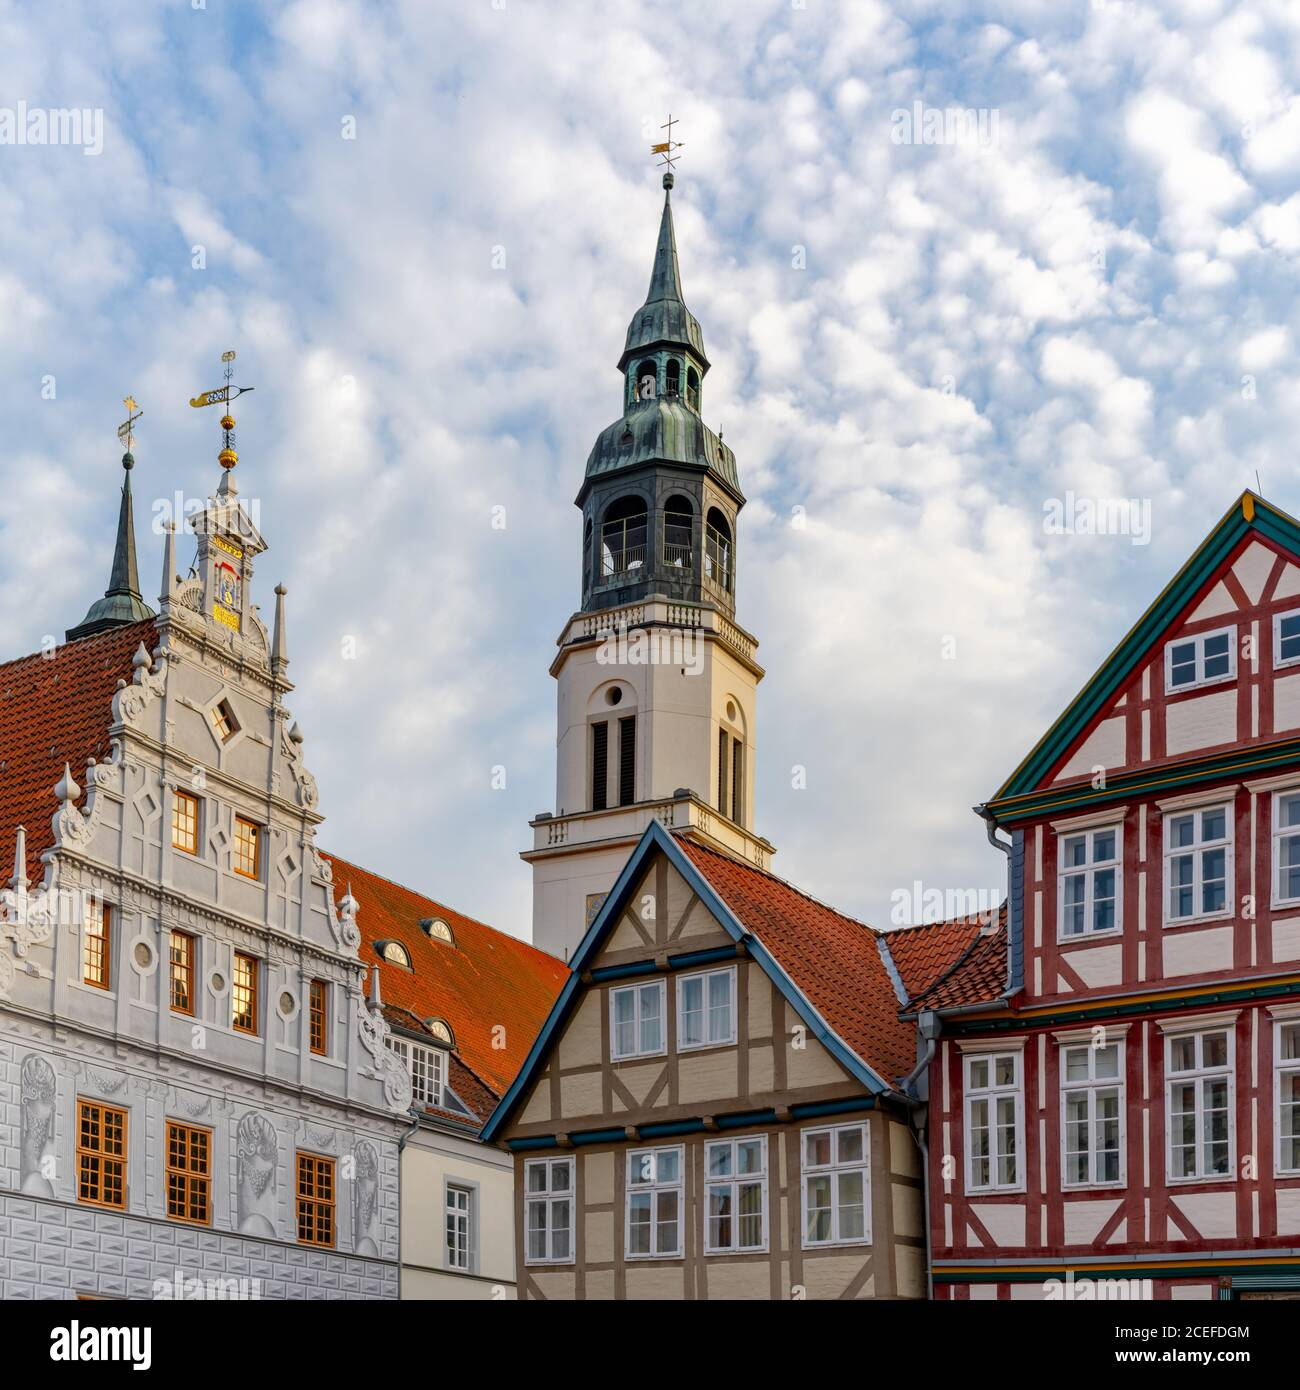 Celle, Niedersachsen / Germany - 3 August 2020: view of the old city hall and St. Marien Church building in Celle in Lower Saxony Stock Photo